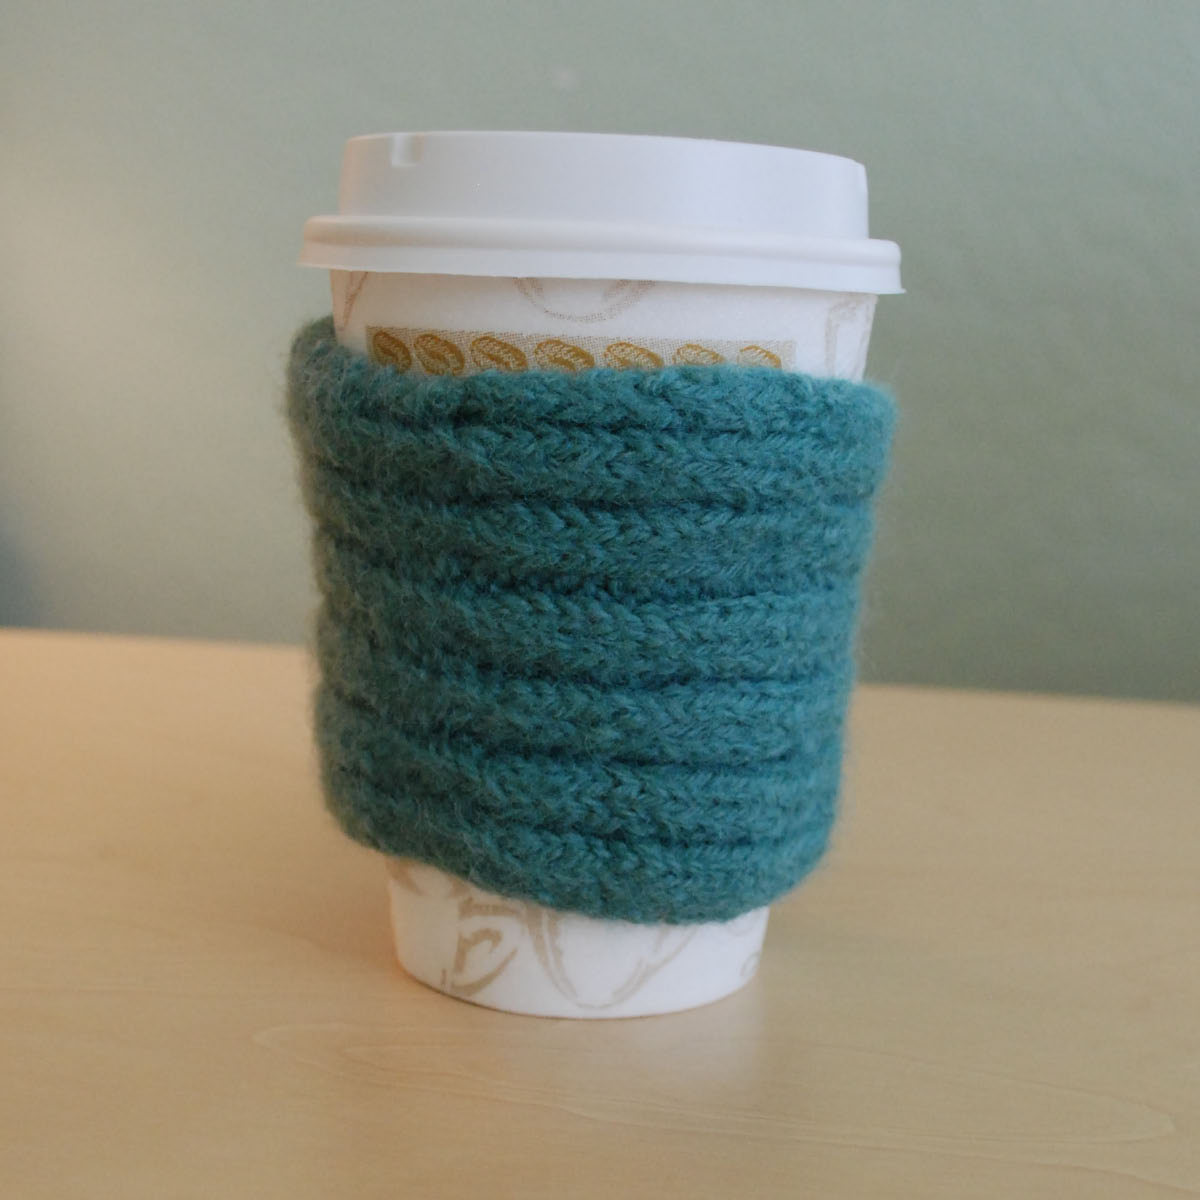 Orchid Lane Designs: Free Knitting Pattern - Coffee Cup Cozy